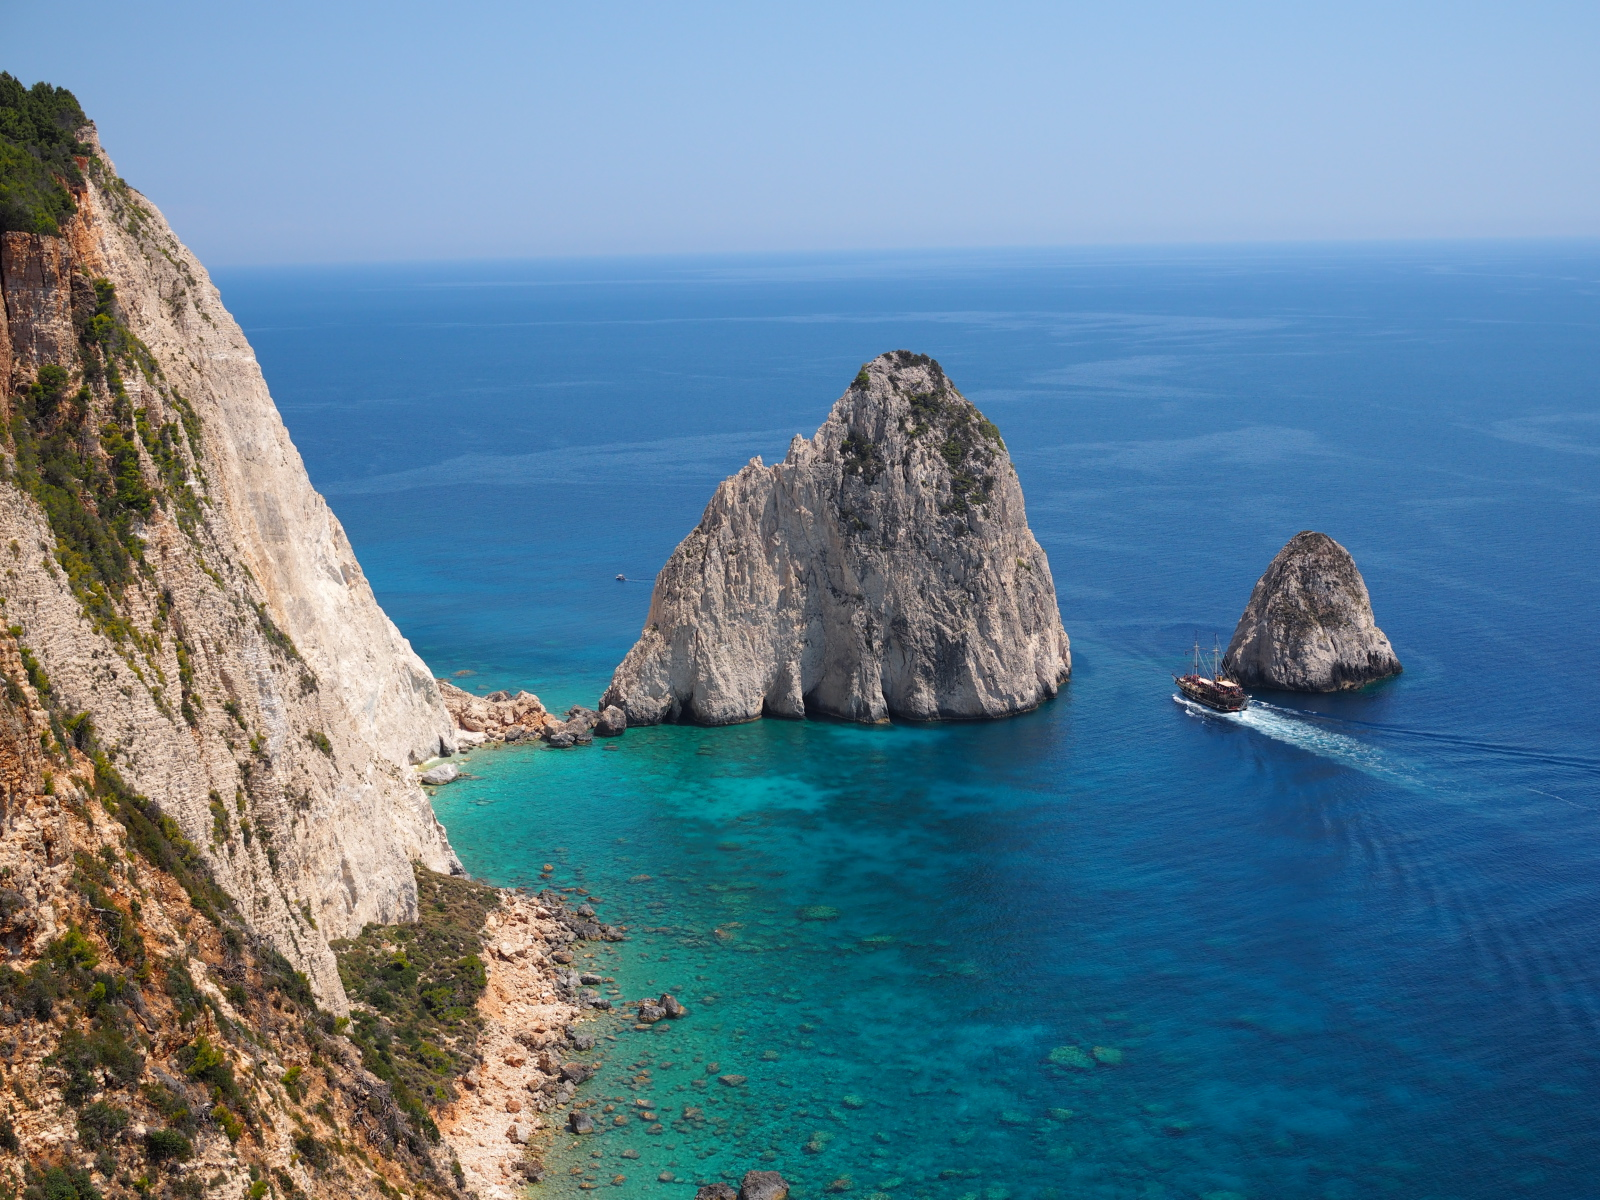 placefordreams.zakynthos.1111111.jpg